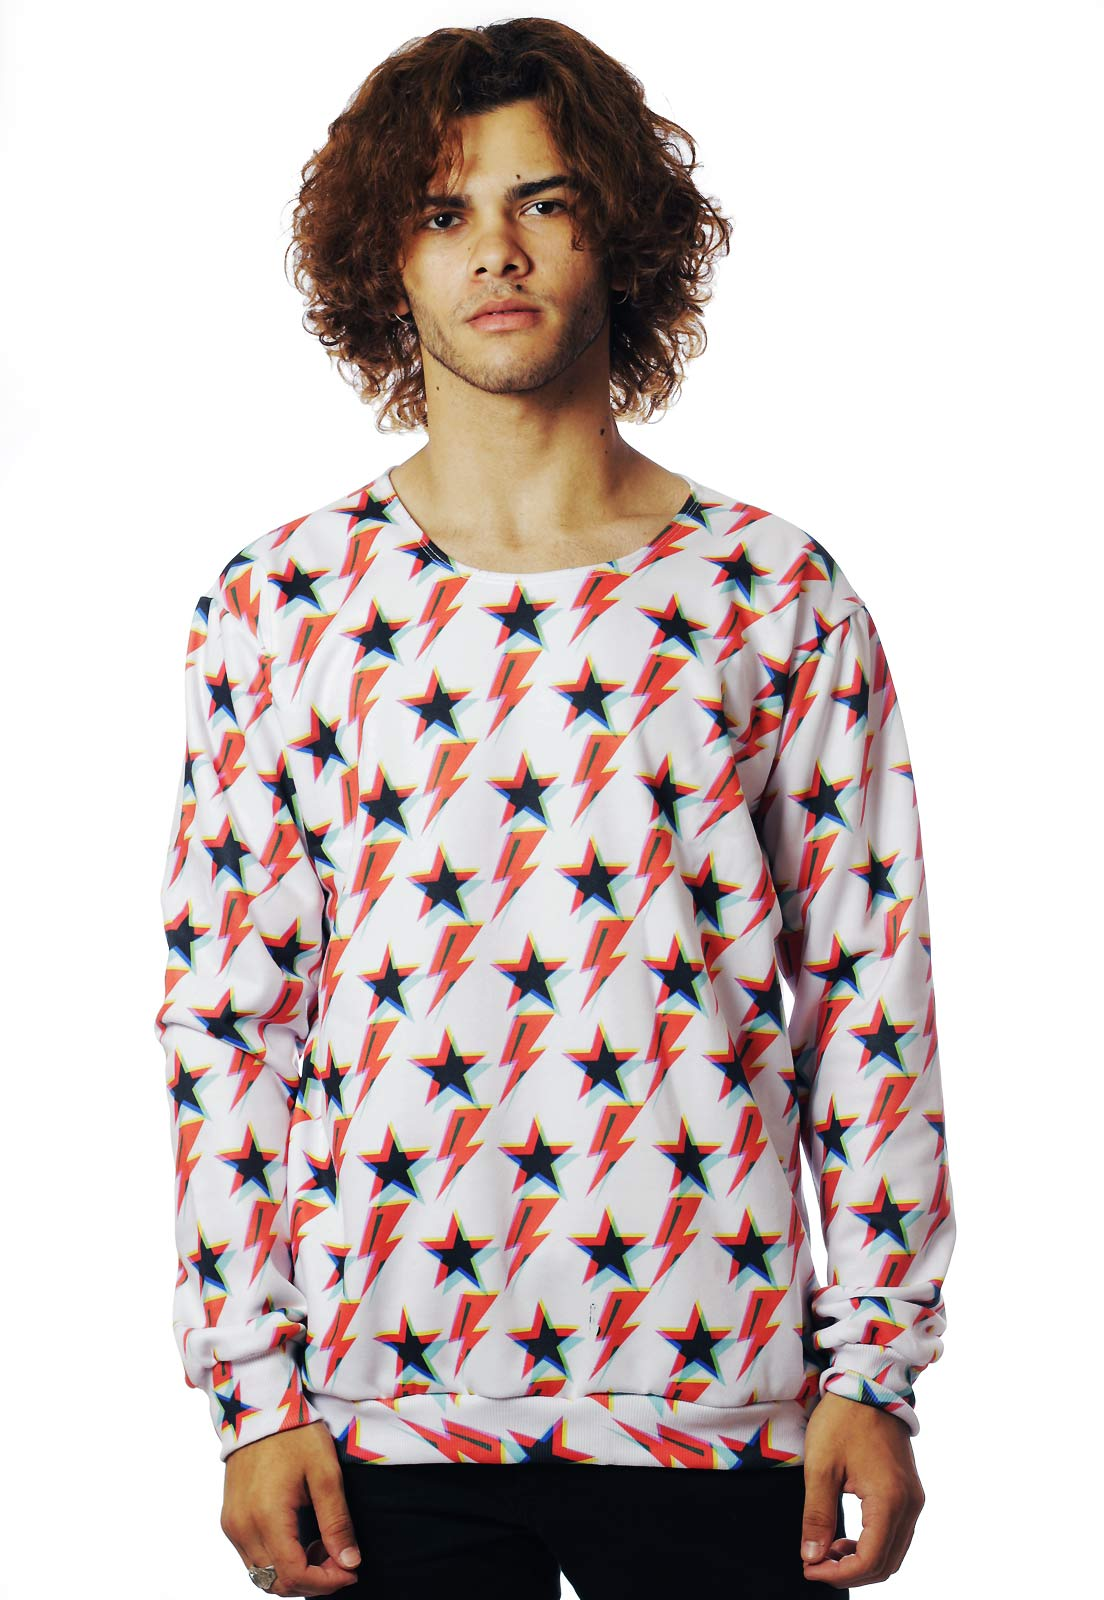 BLUSA MOLETOM ESTAMPADO FULL PRINT UNISSEX ZIGGY STAR